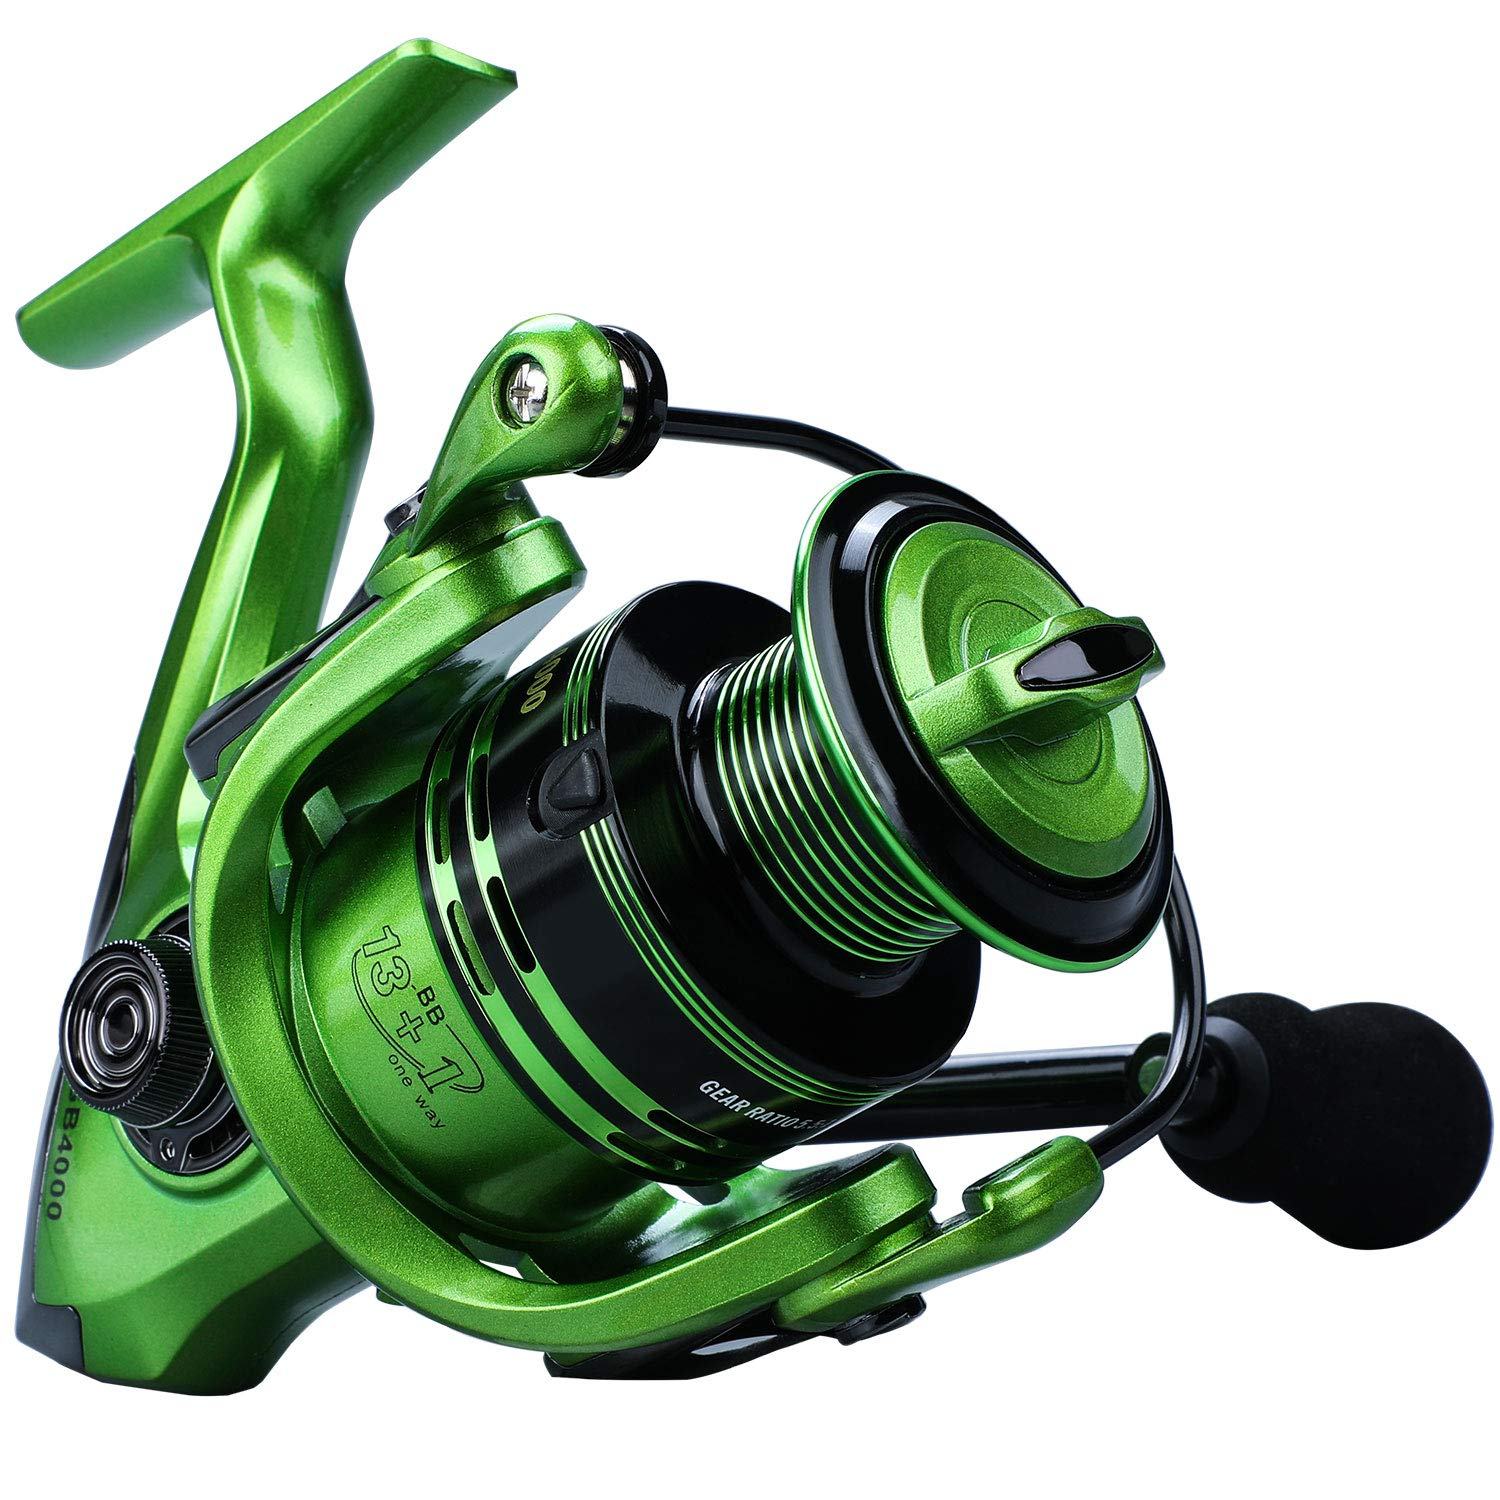 YONGZHI Bulnt Fishing Reels,13 1BB Light Weight and Ultra Smooth Powerful Spinning Reels for Saltwater and Freshwater Fishing.